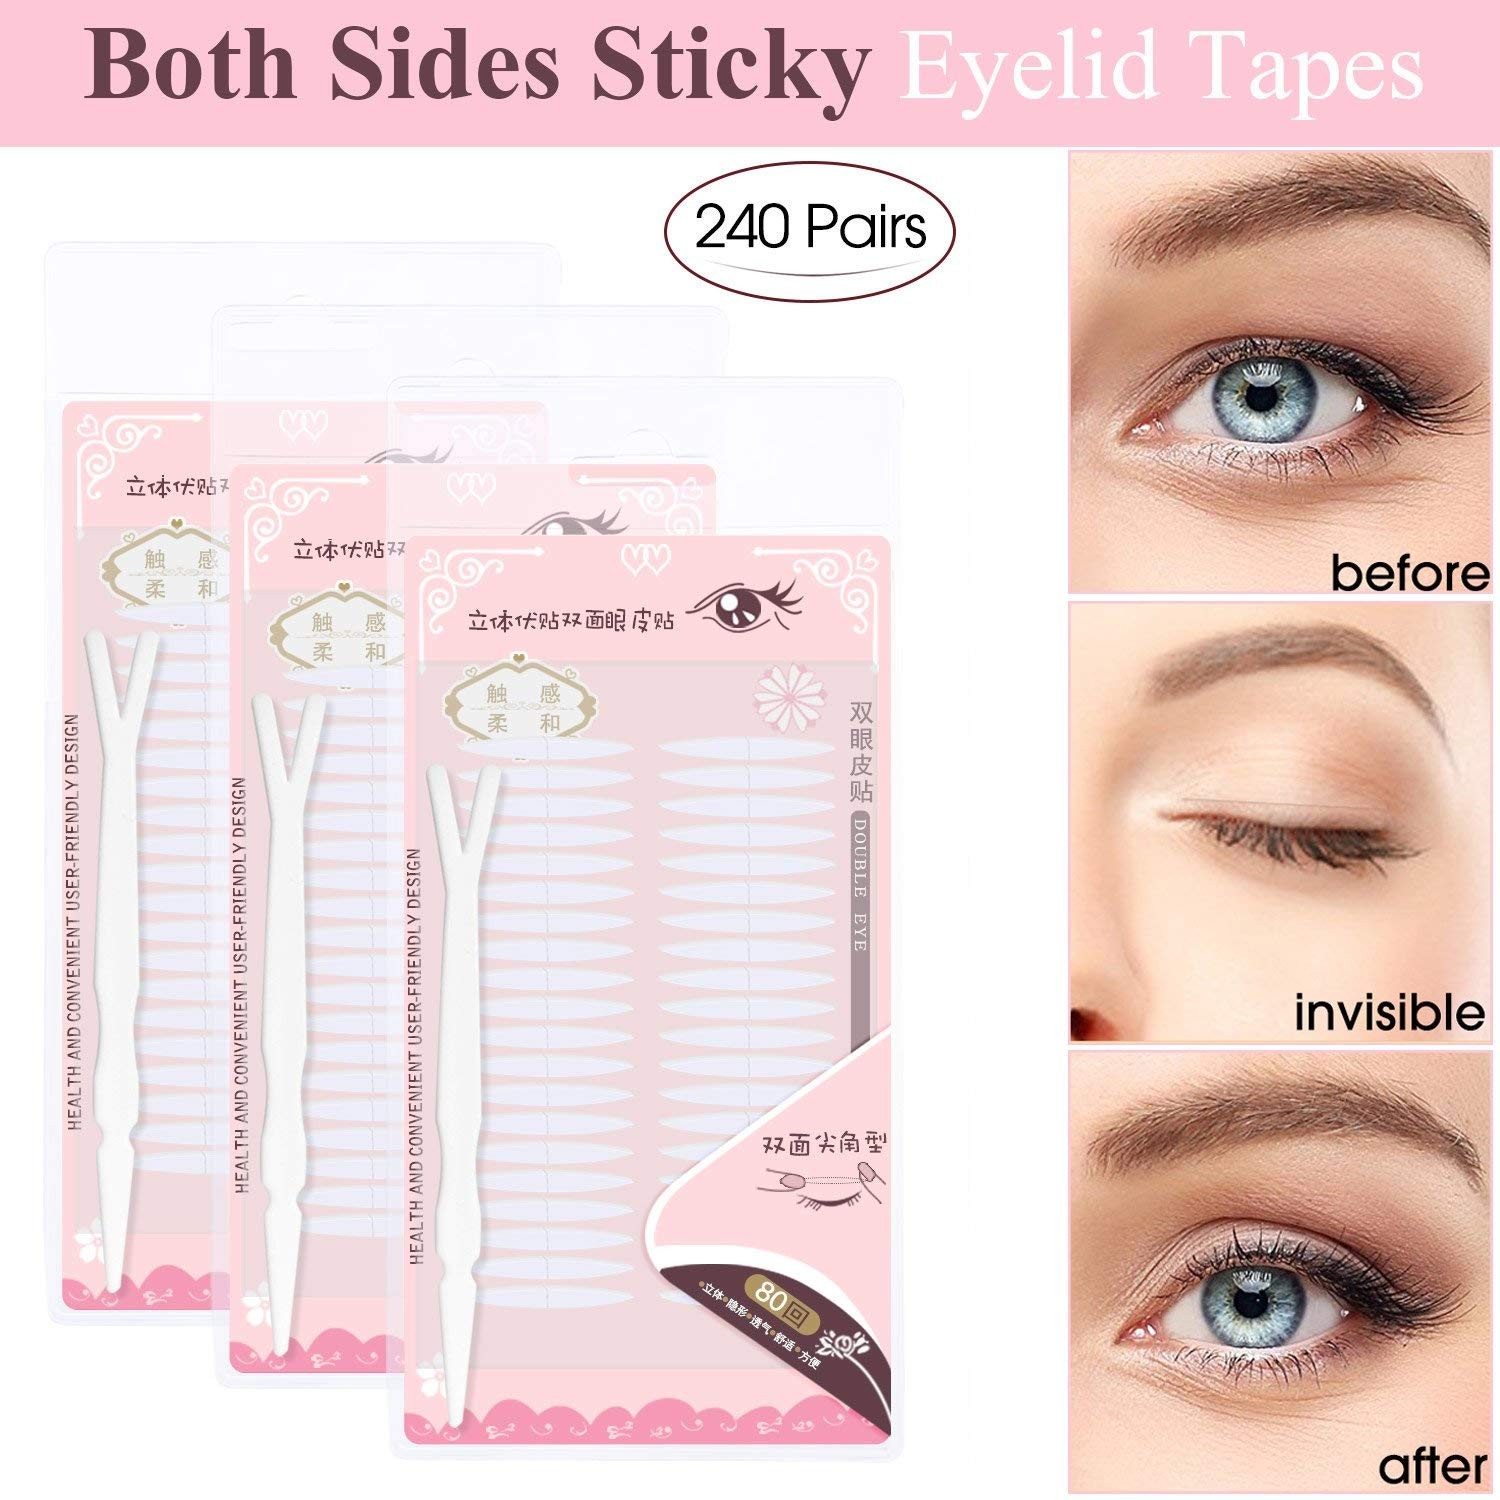 Buy 240 Pairs Invisible Double Side Sticky Eyelid Tapes Stickers